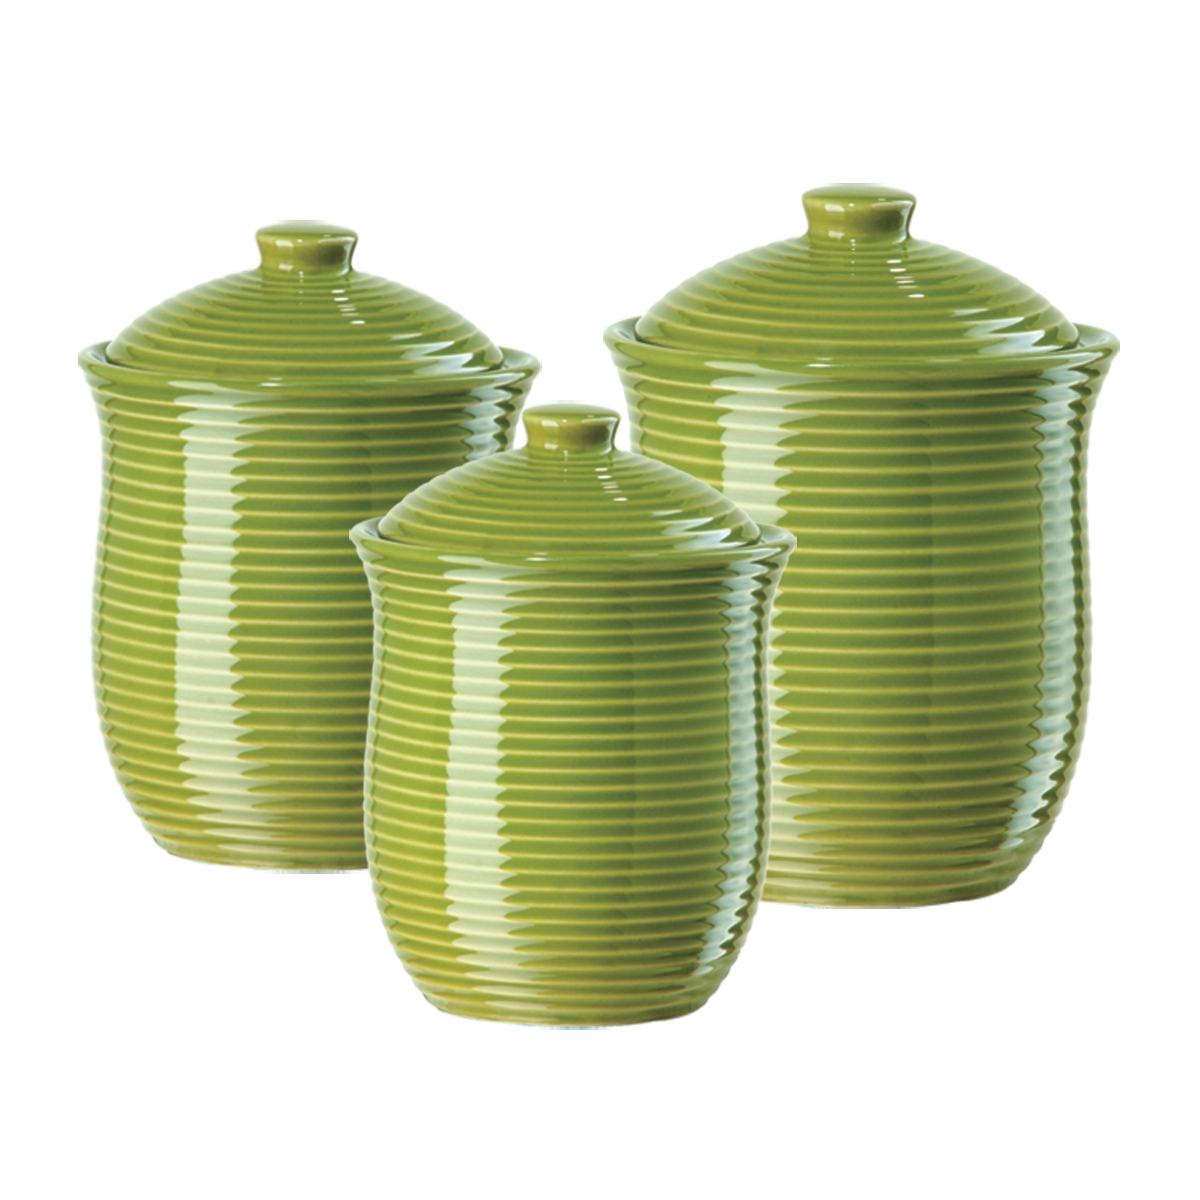 Gift Amp Home Today Storage Canisters For The Kitchen